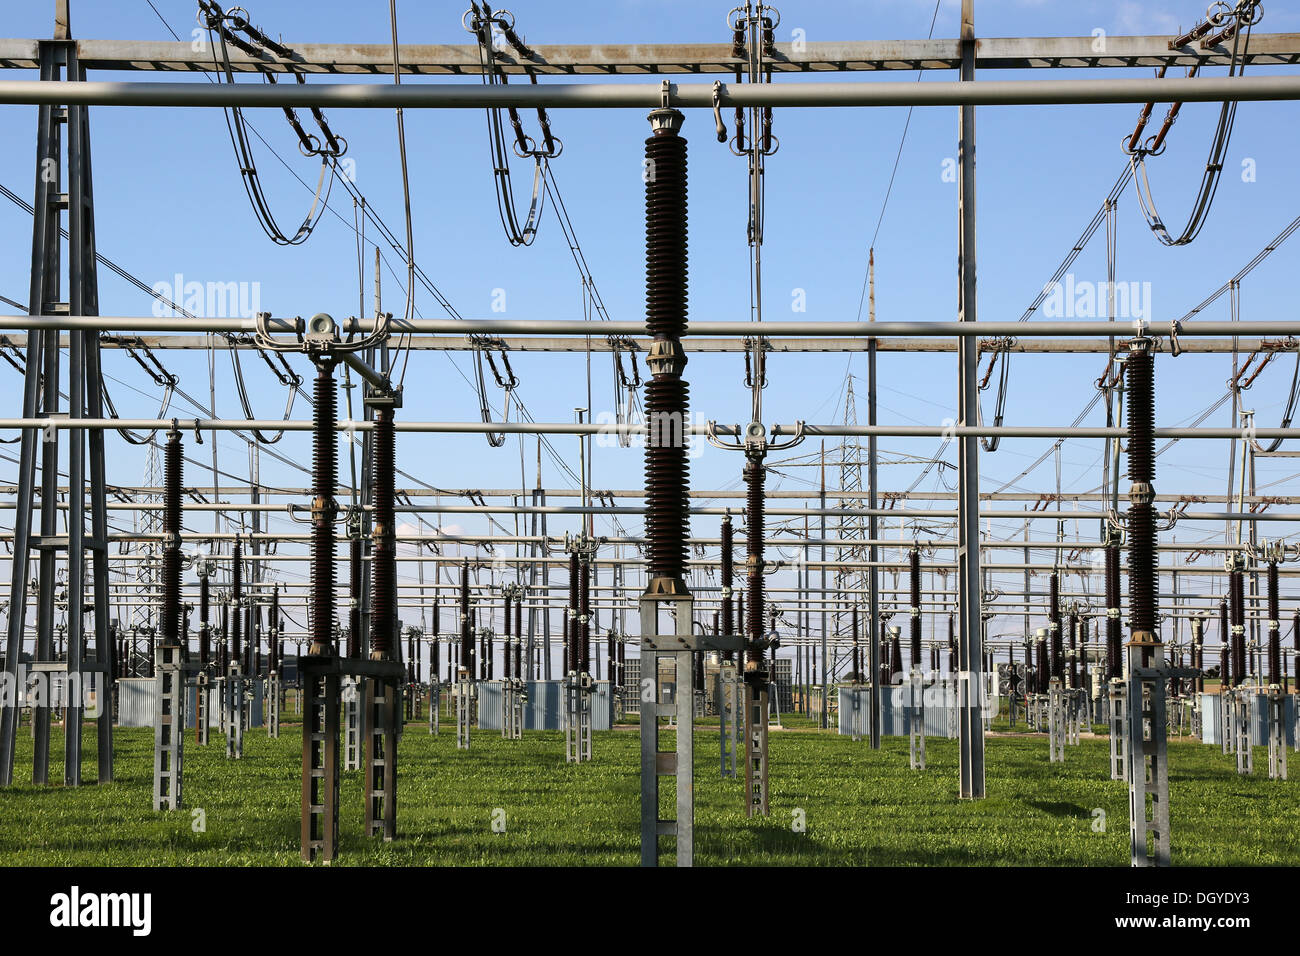 An electrical substation with transformers and resistors - Stock Image